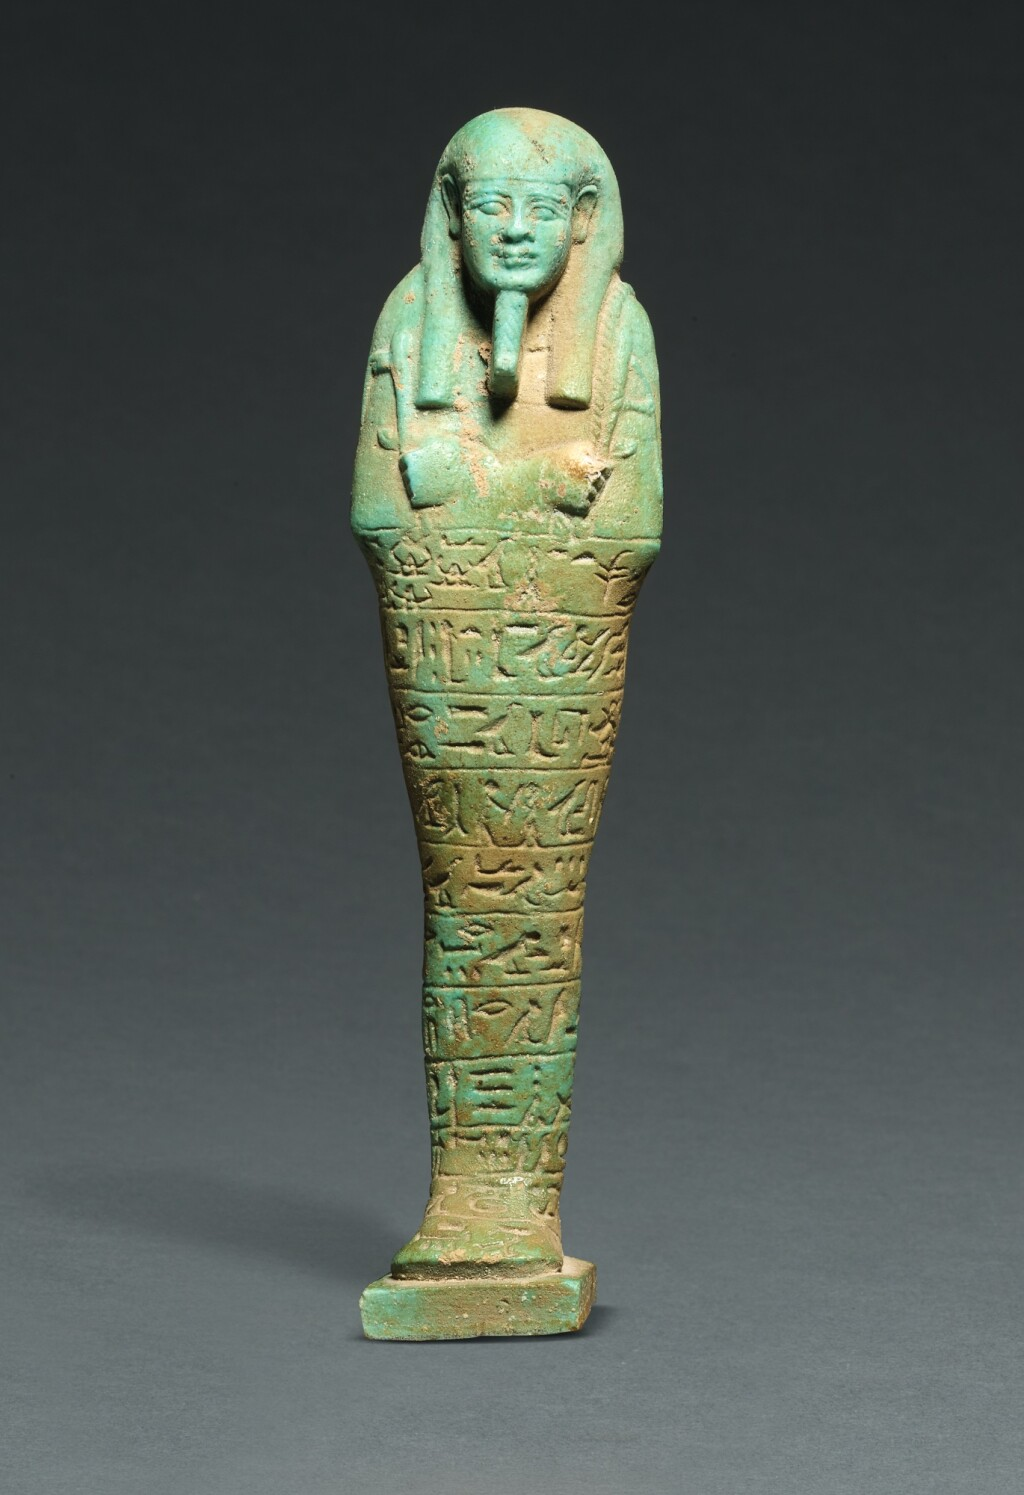 AN EGYPTIAN TURQUOISE-BLUE FAIENCE USHABTI OF TJAI-NE-HEBU, ADMIRAL OF THE ROYAL FLEET, 26TH DYNASTY, REIGN OF AMASIS, 570-526 B.C.